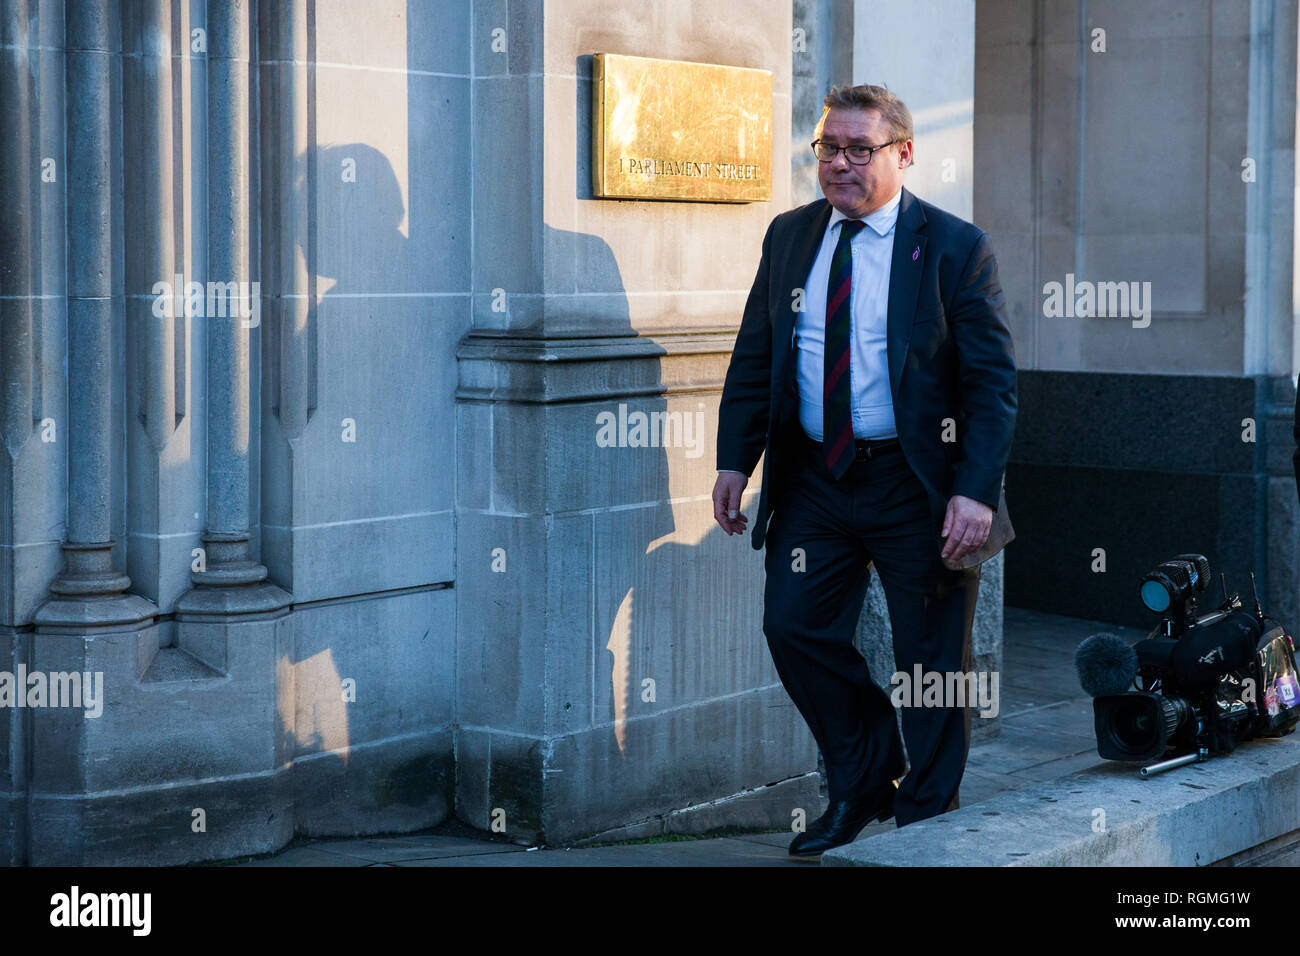 London, UK. 30th January, 2019. Brexiteer Mark Francois, Conservative MP for Rayleigh and Wickford, seen in Westminster. Credit: Mark Kerrison/Alamy Live News - Stock Image